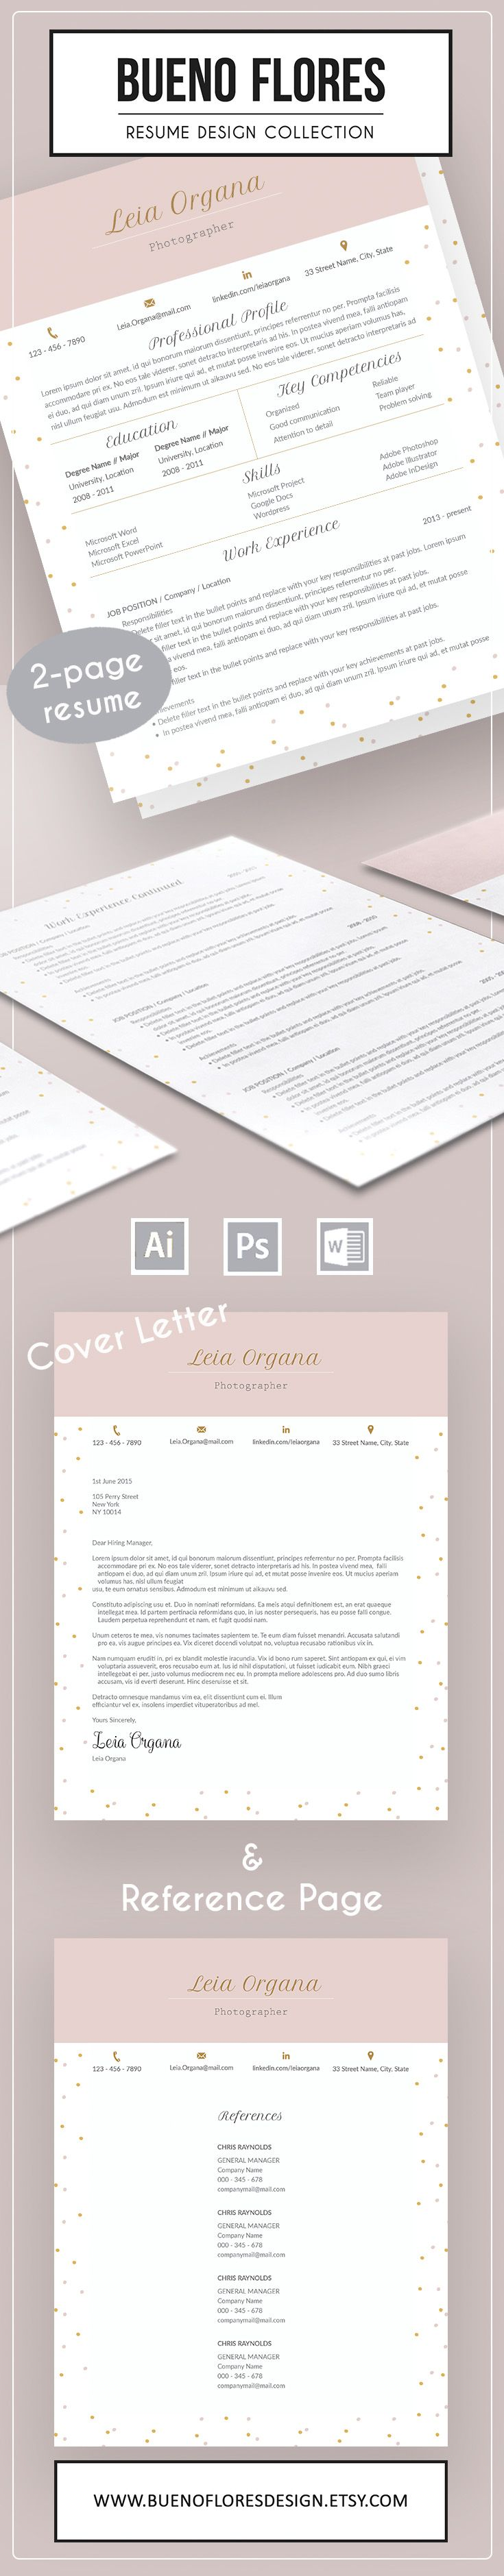 """Bueno Flores Resume Template """"Leia Organa"""", a 2 page resume design with matching cover letter and reference page. Free login organizer with every purchase. #resume template #resume design"""